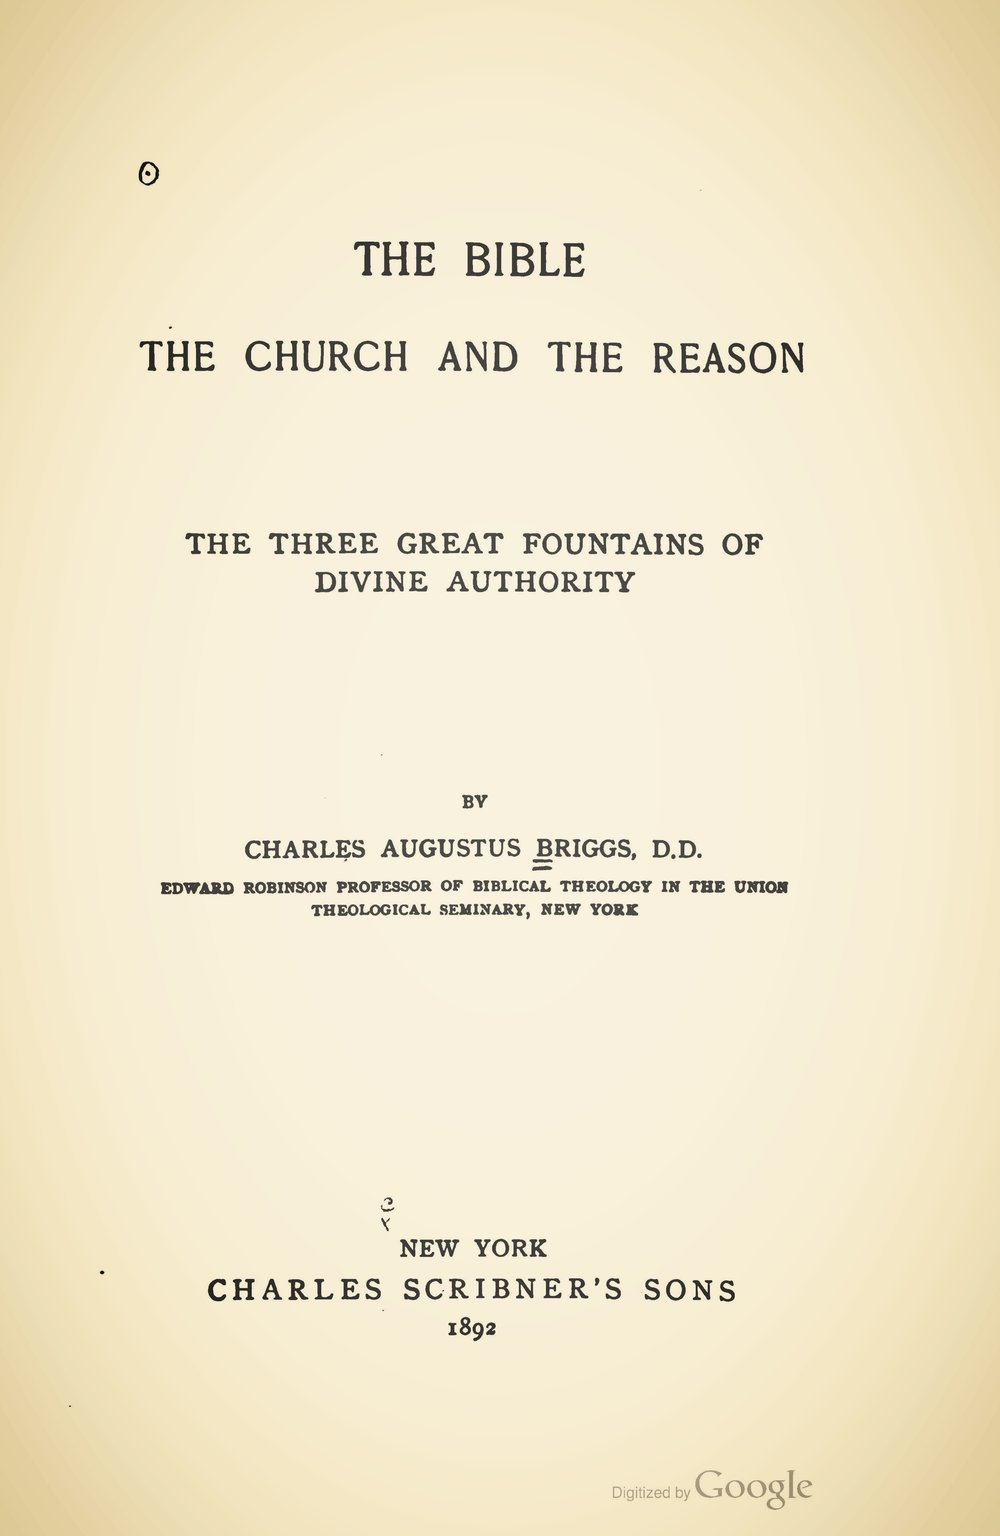 Briggs, Charles Augustus, The Bible, the Church, and the Reason Title Page.jpg